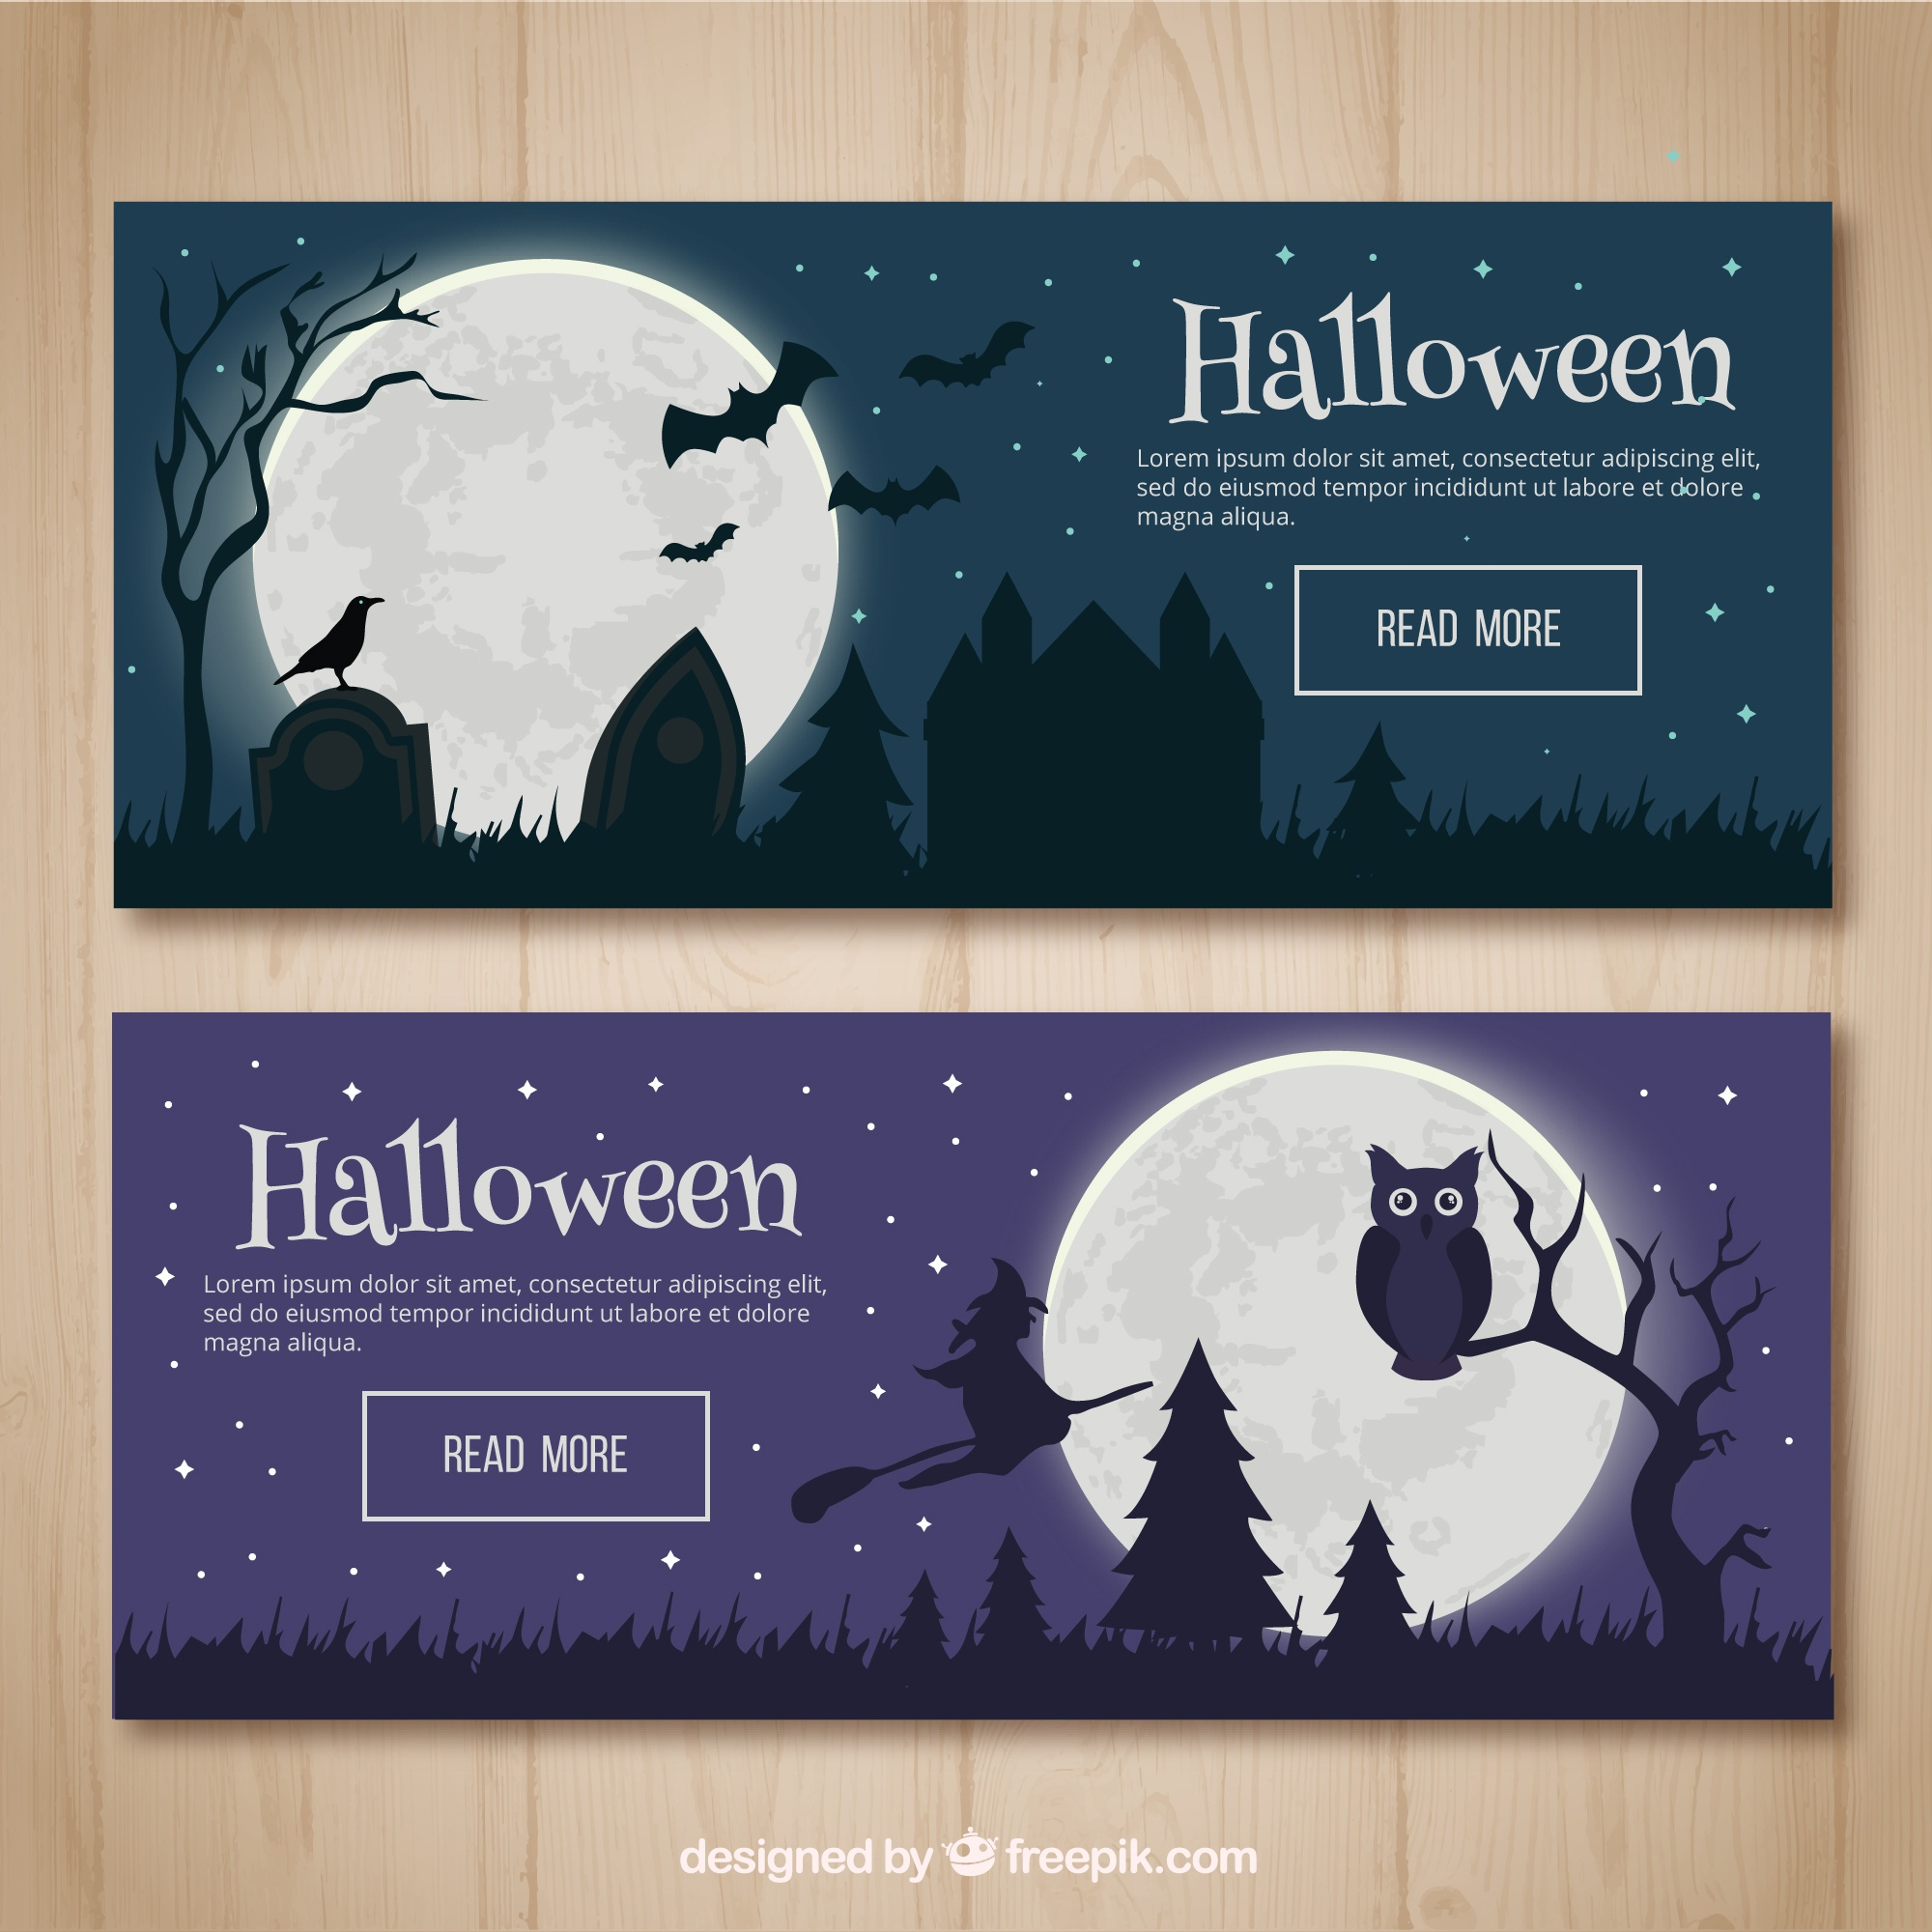 Banners of halloween night landscapes